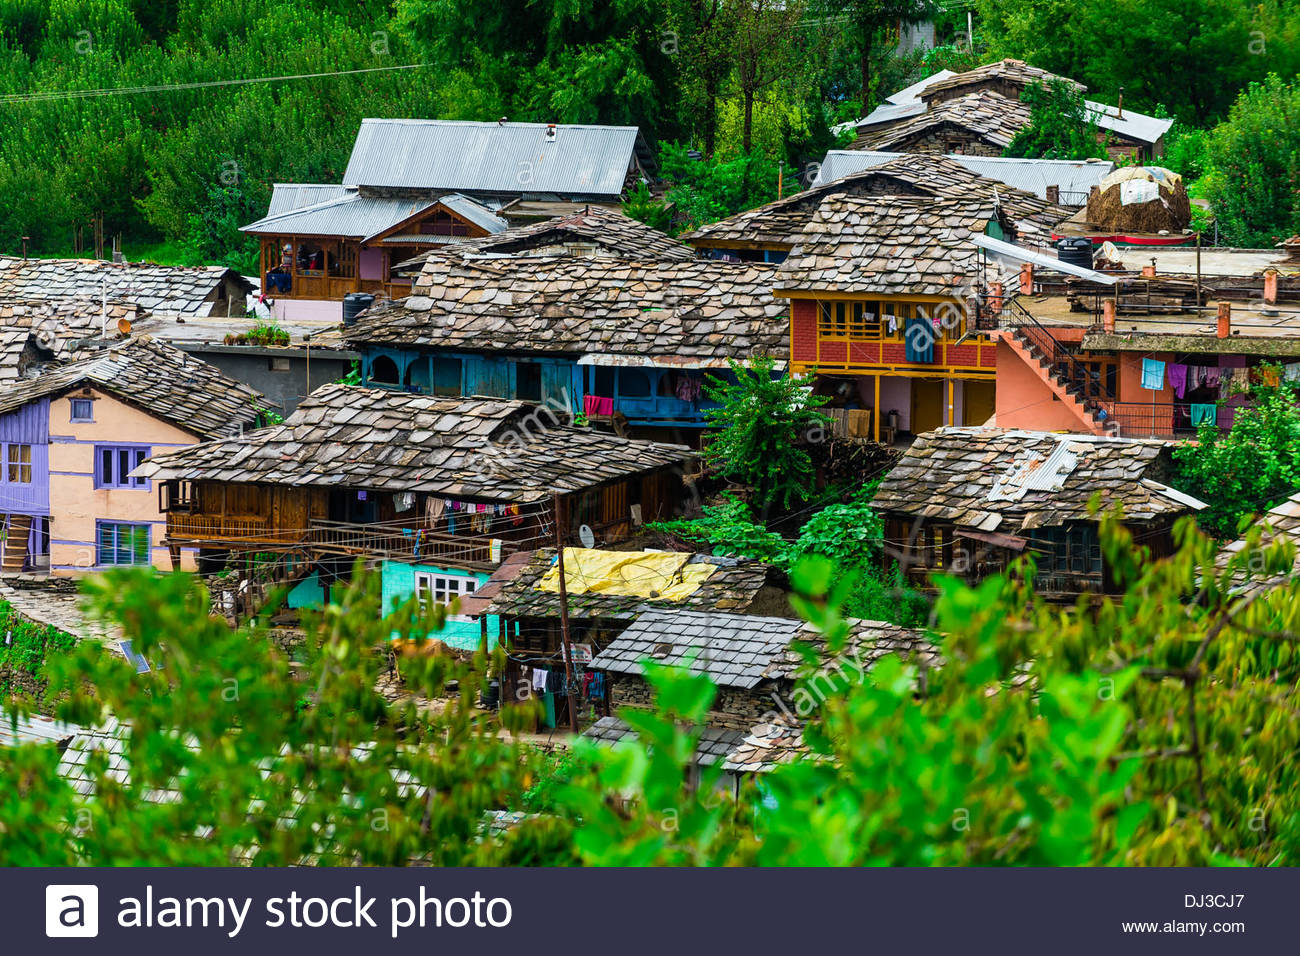 Naggar, near Manali, Himachal Pradesh, India. - Stock Image